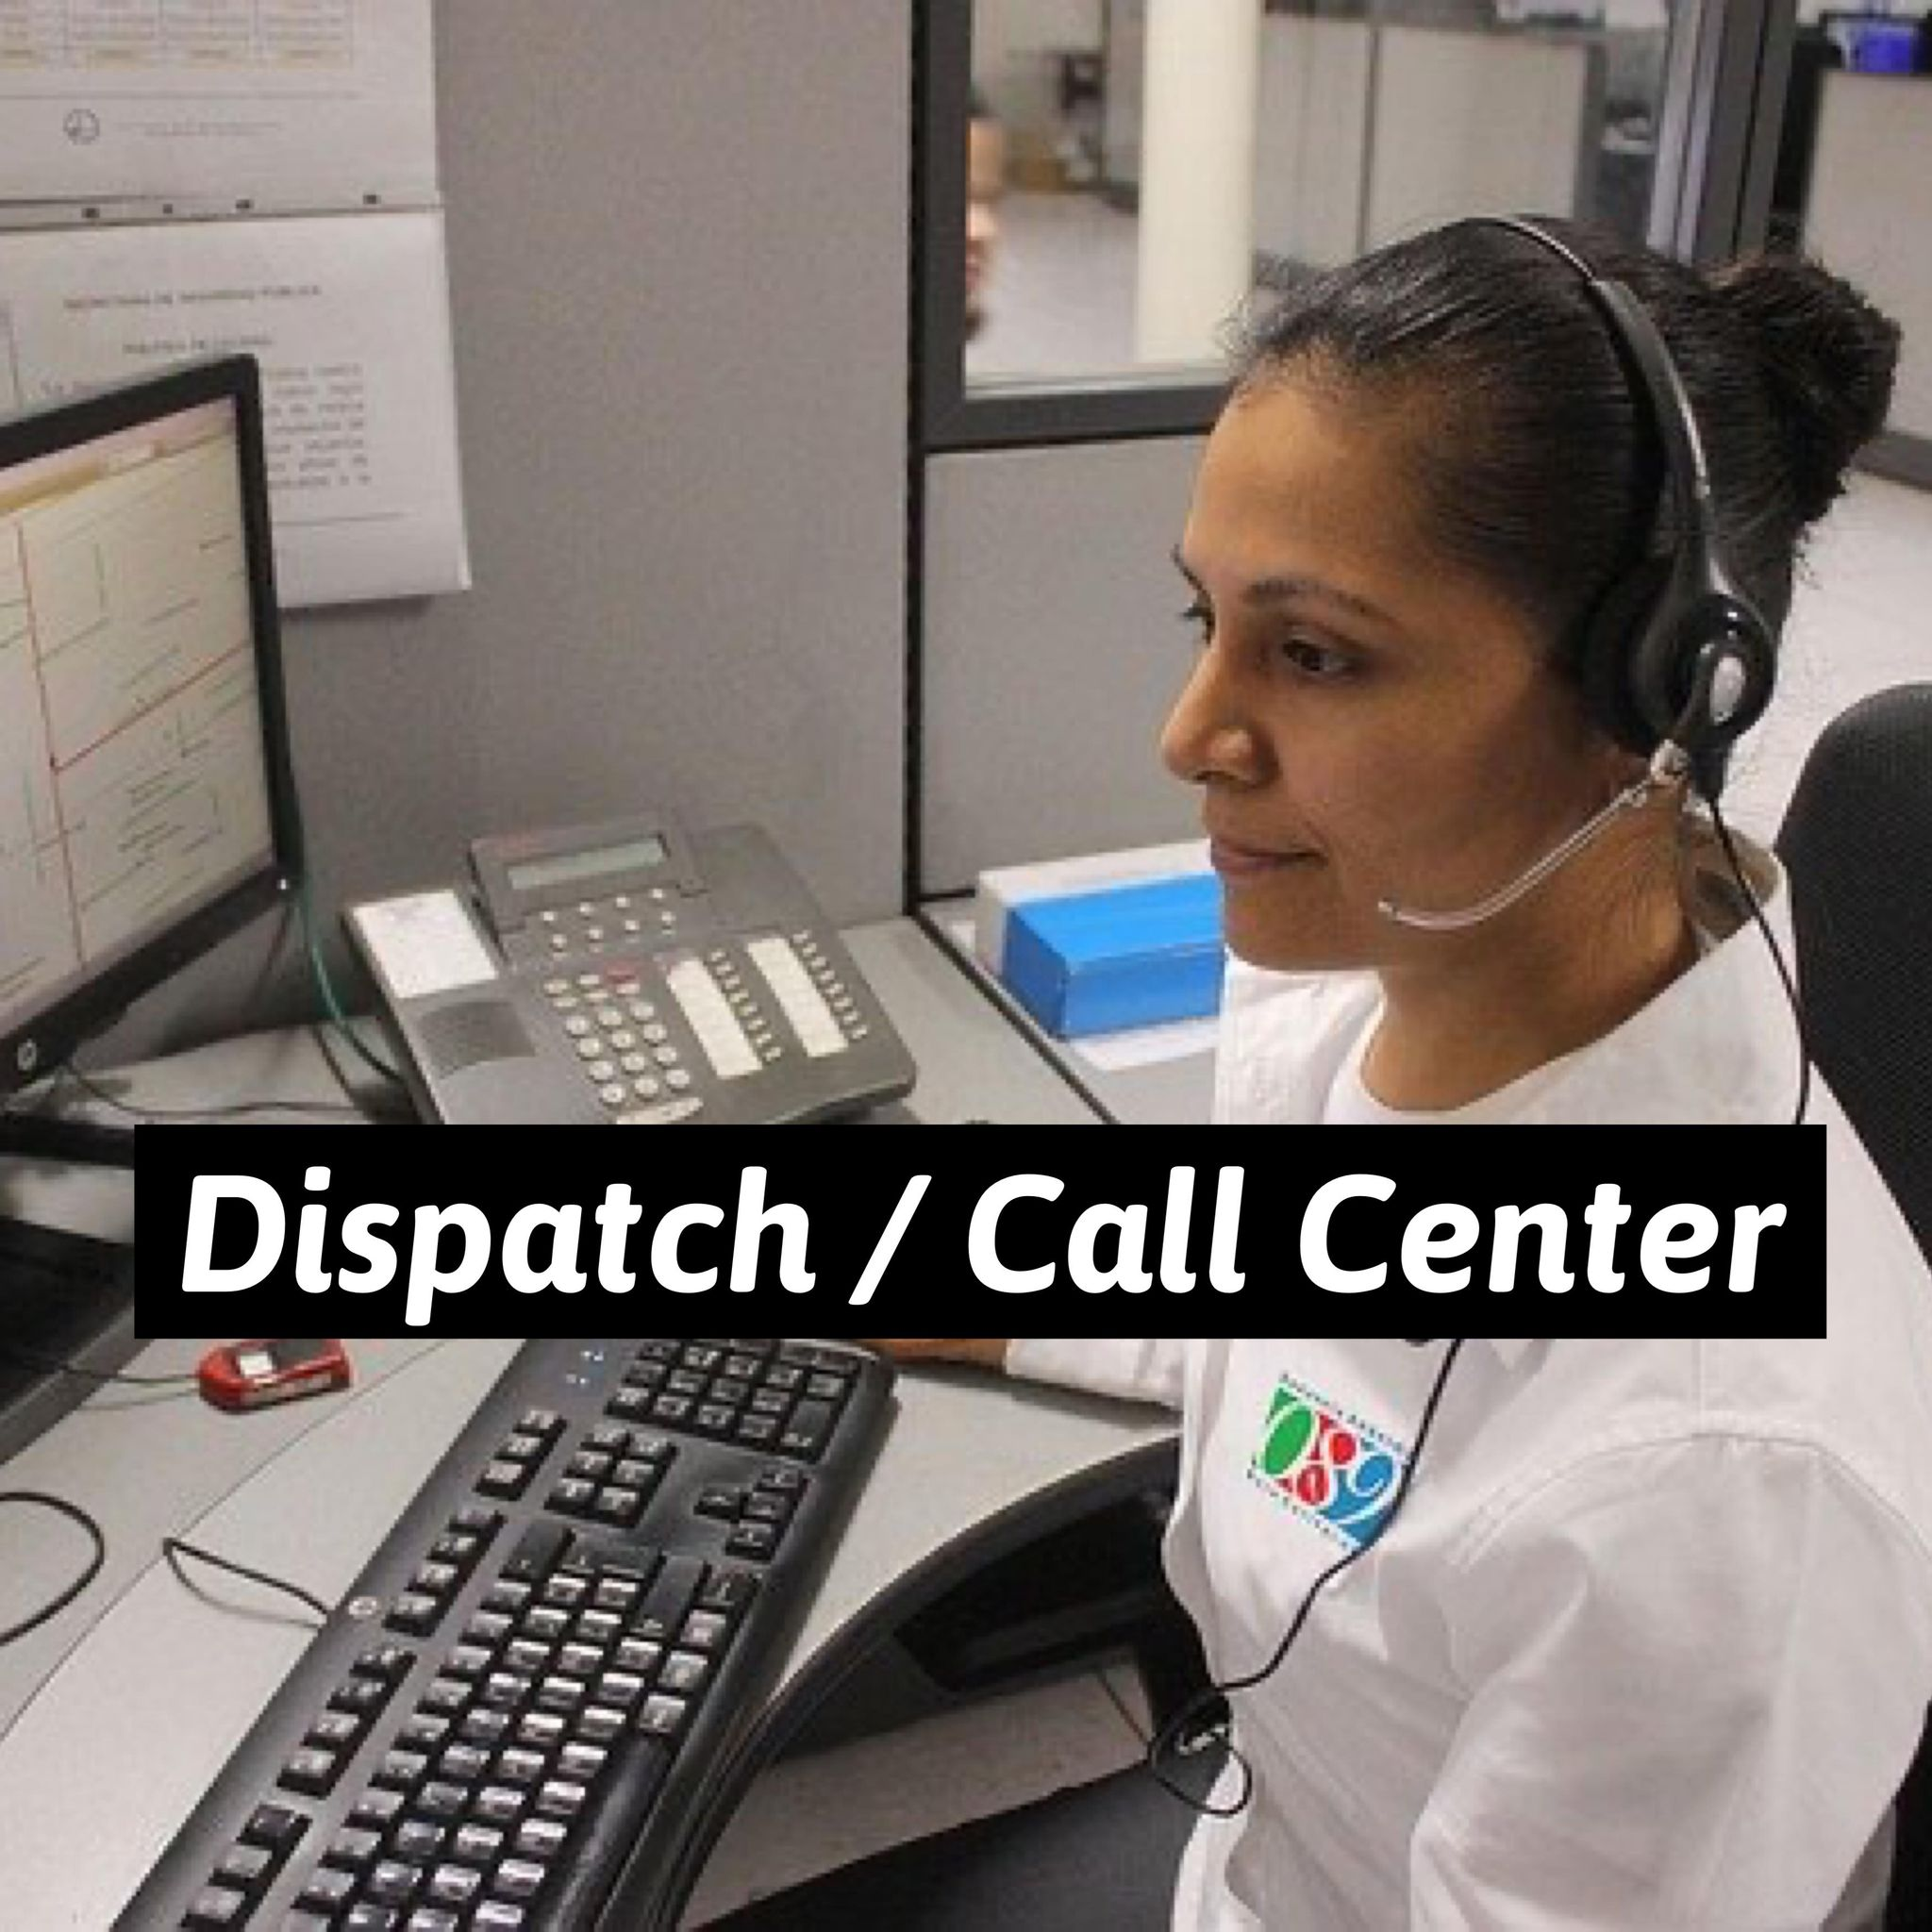 dispatchcallcenterbanner